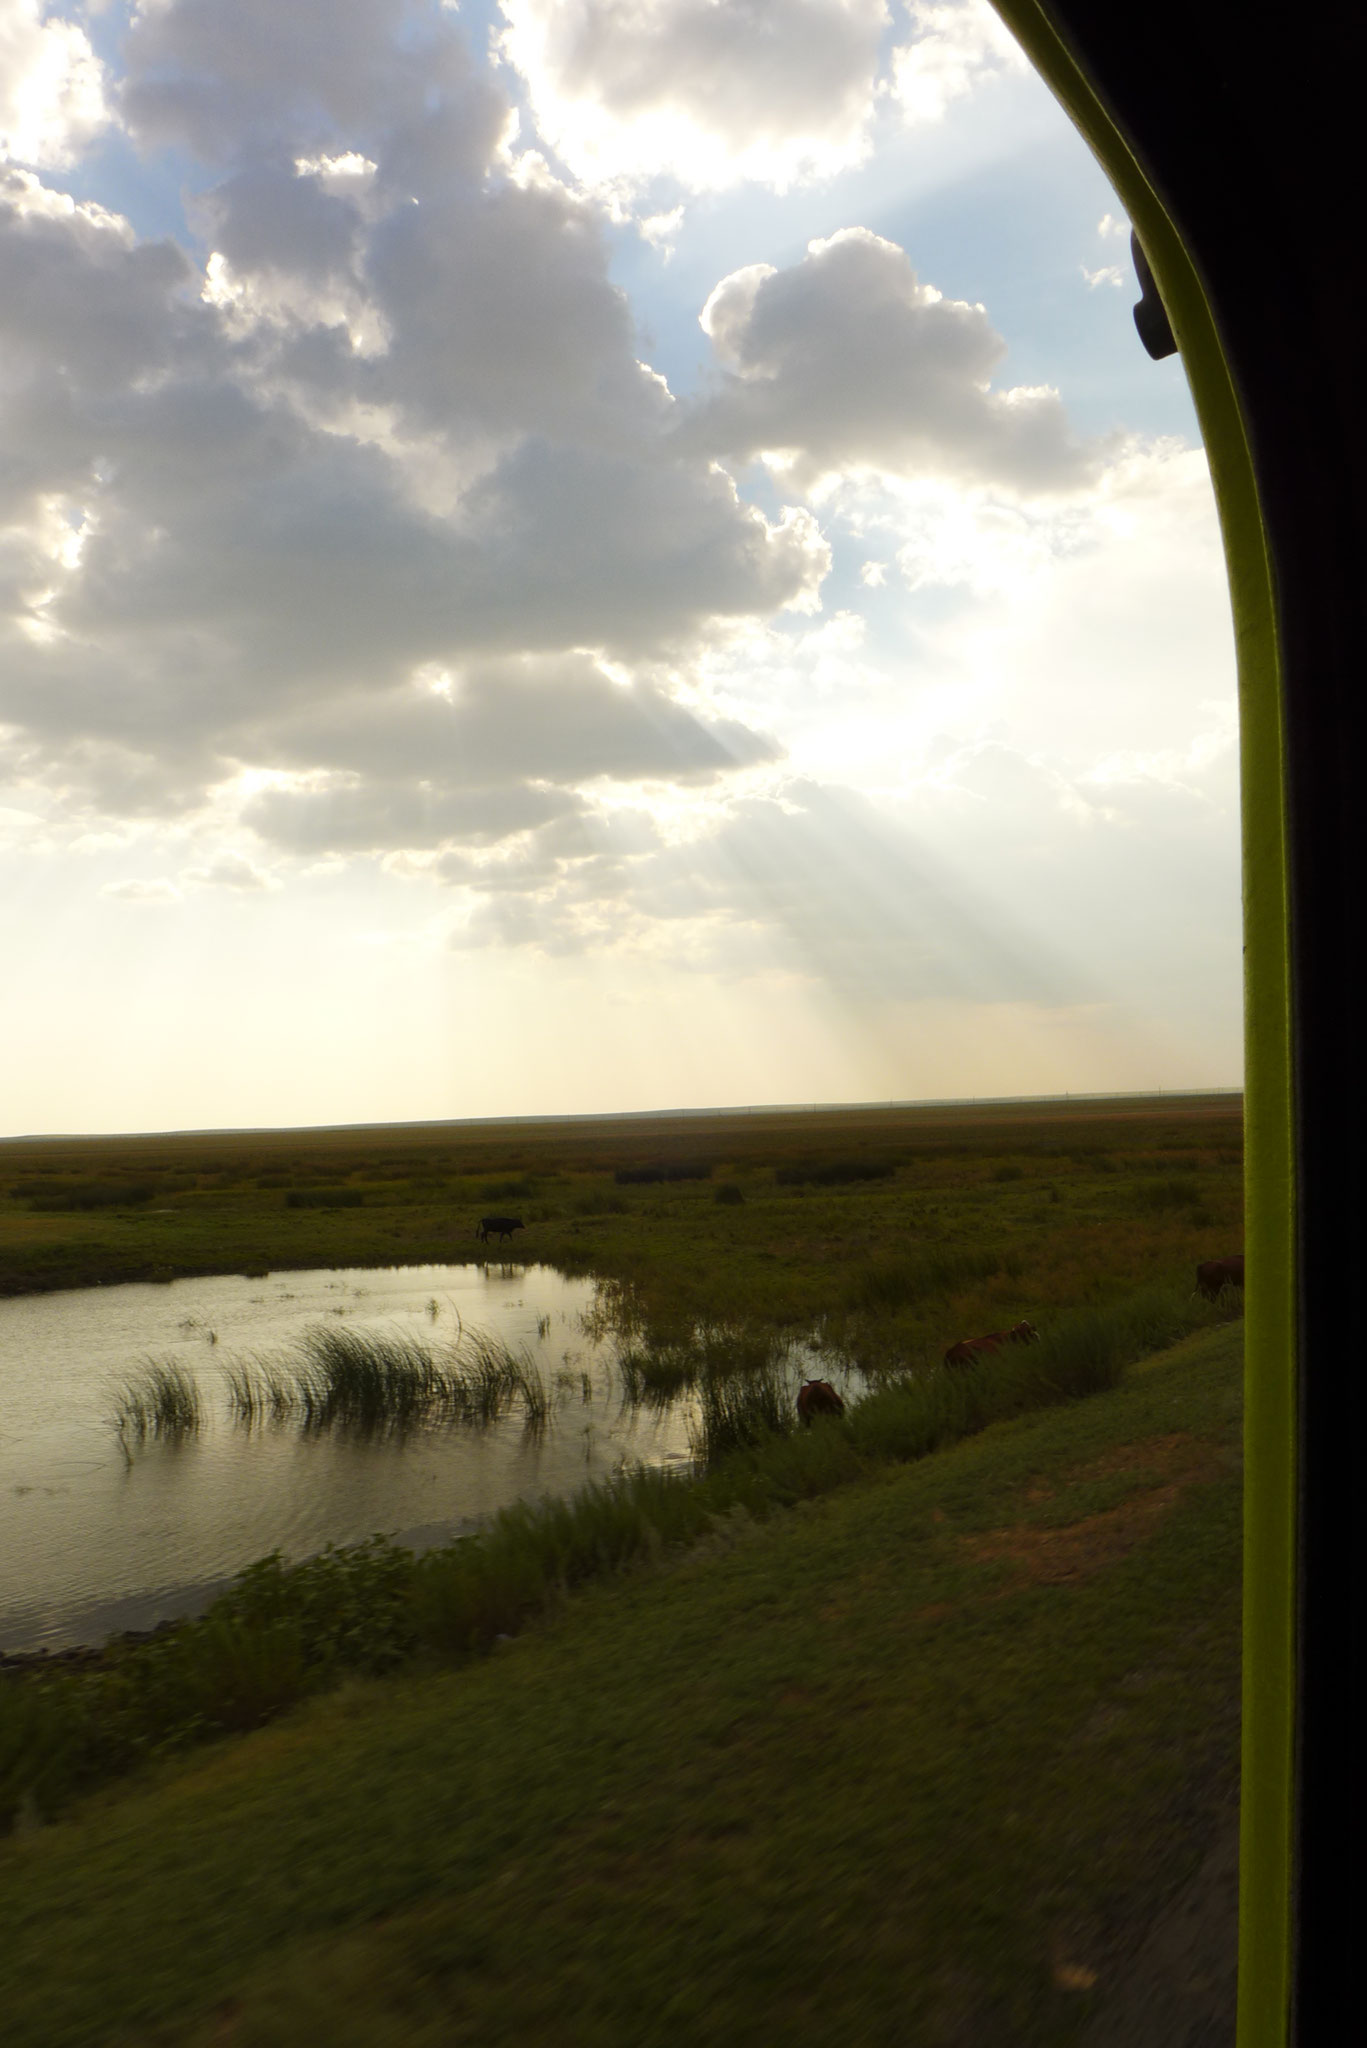 and even a river in the steppe.